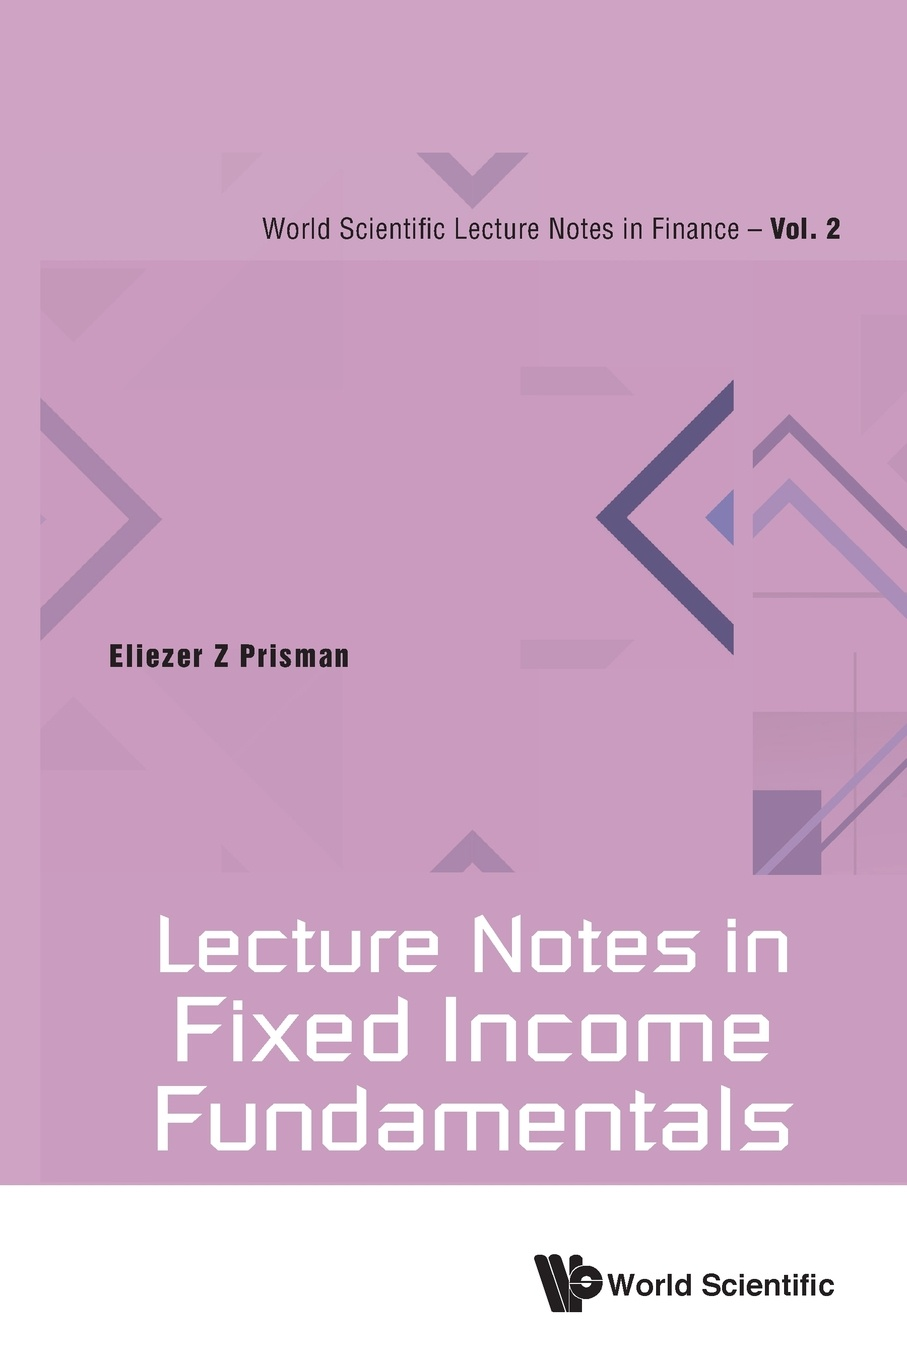 ELIEZER Z PRISMAN Lecture Notes in Fixed Income Fundamentals